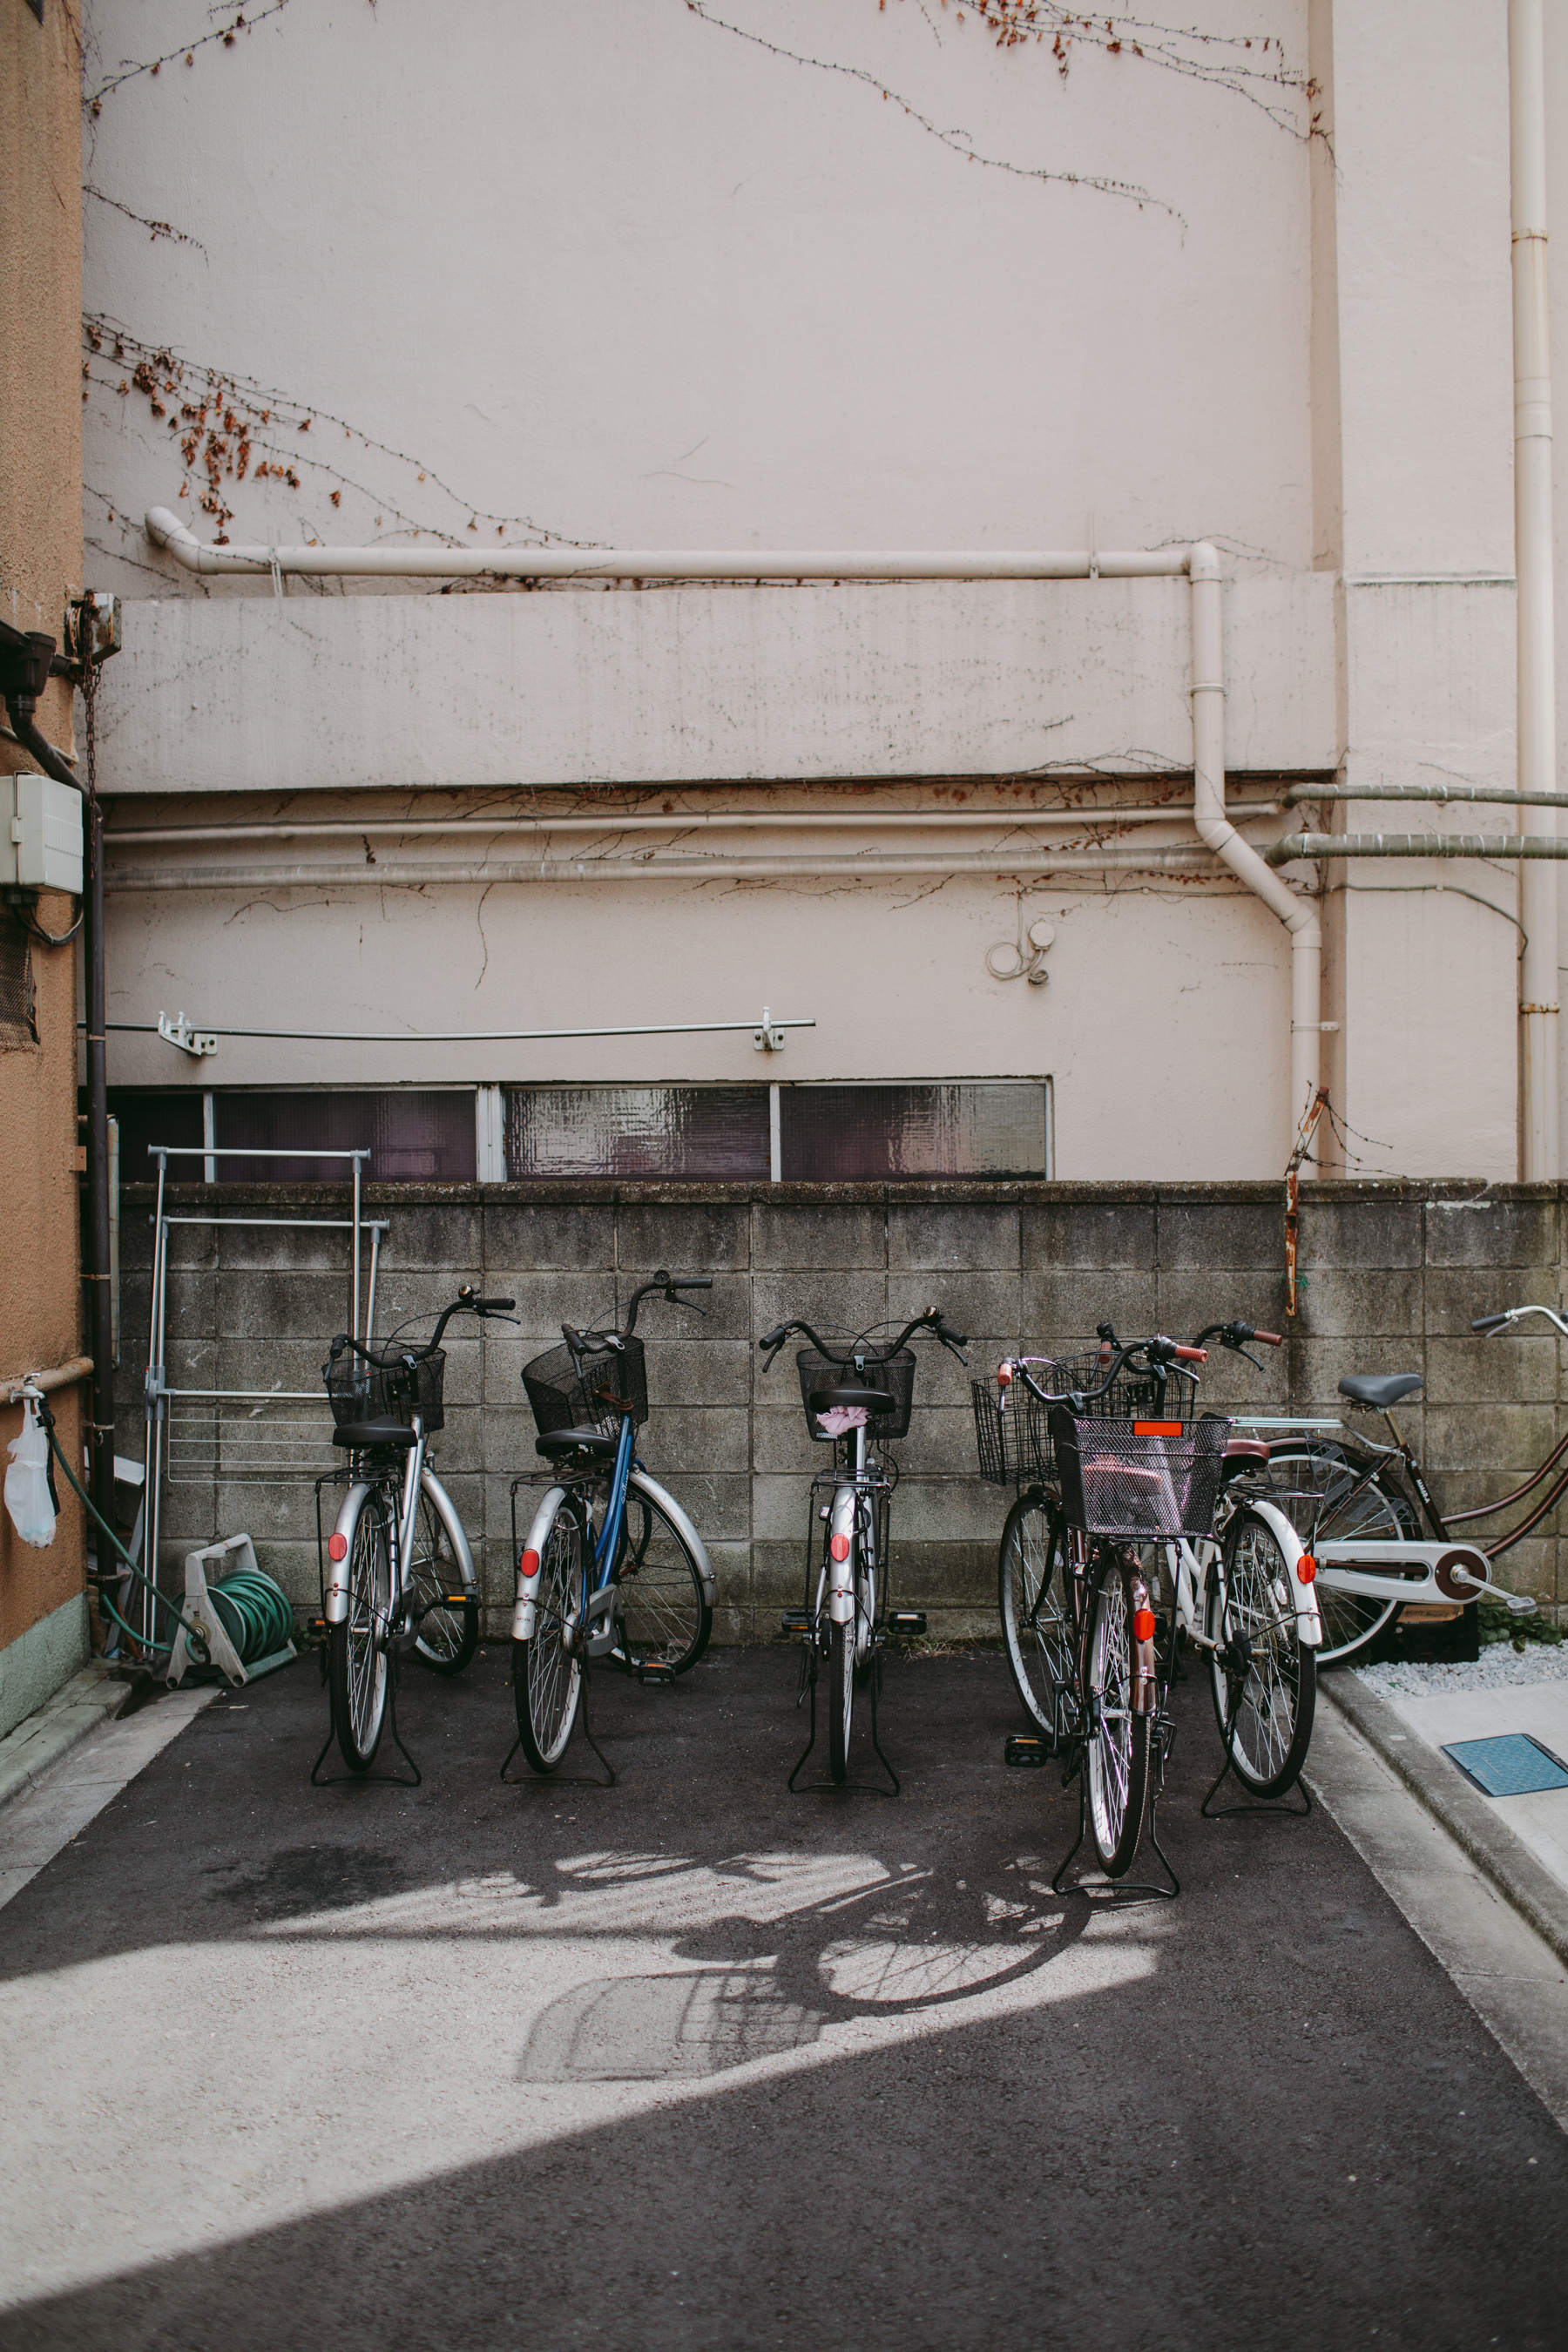 MikeSeehagel-commercial-lifestyle-travel-photography-Japan-11.jpg